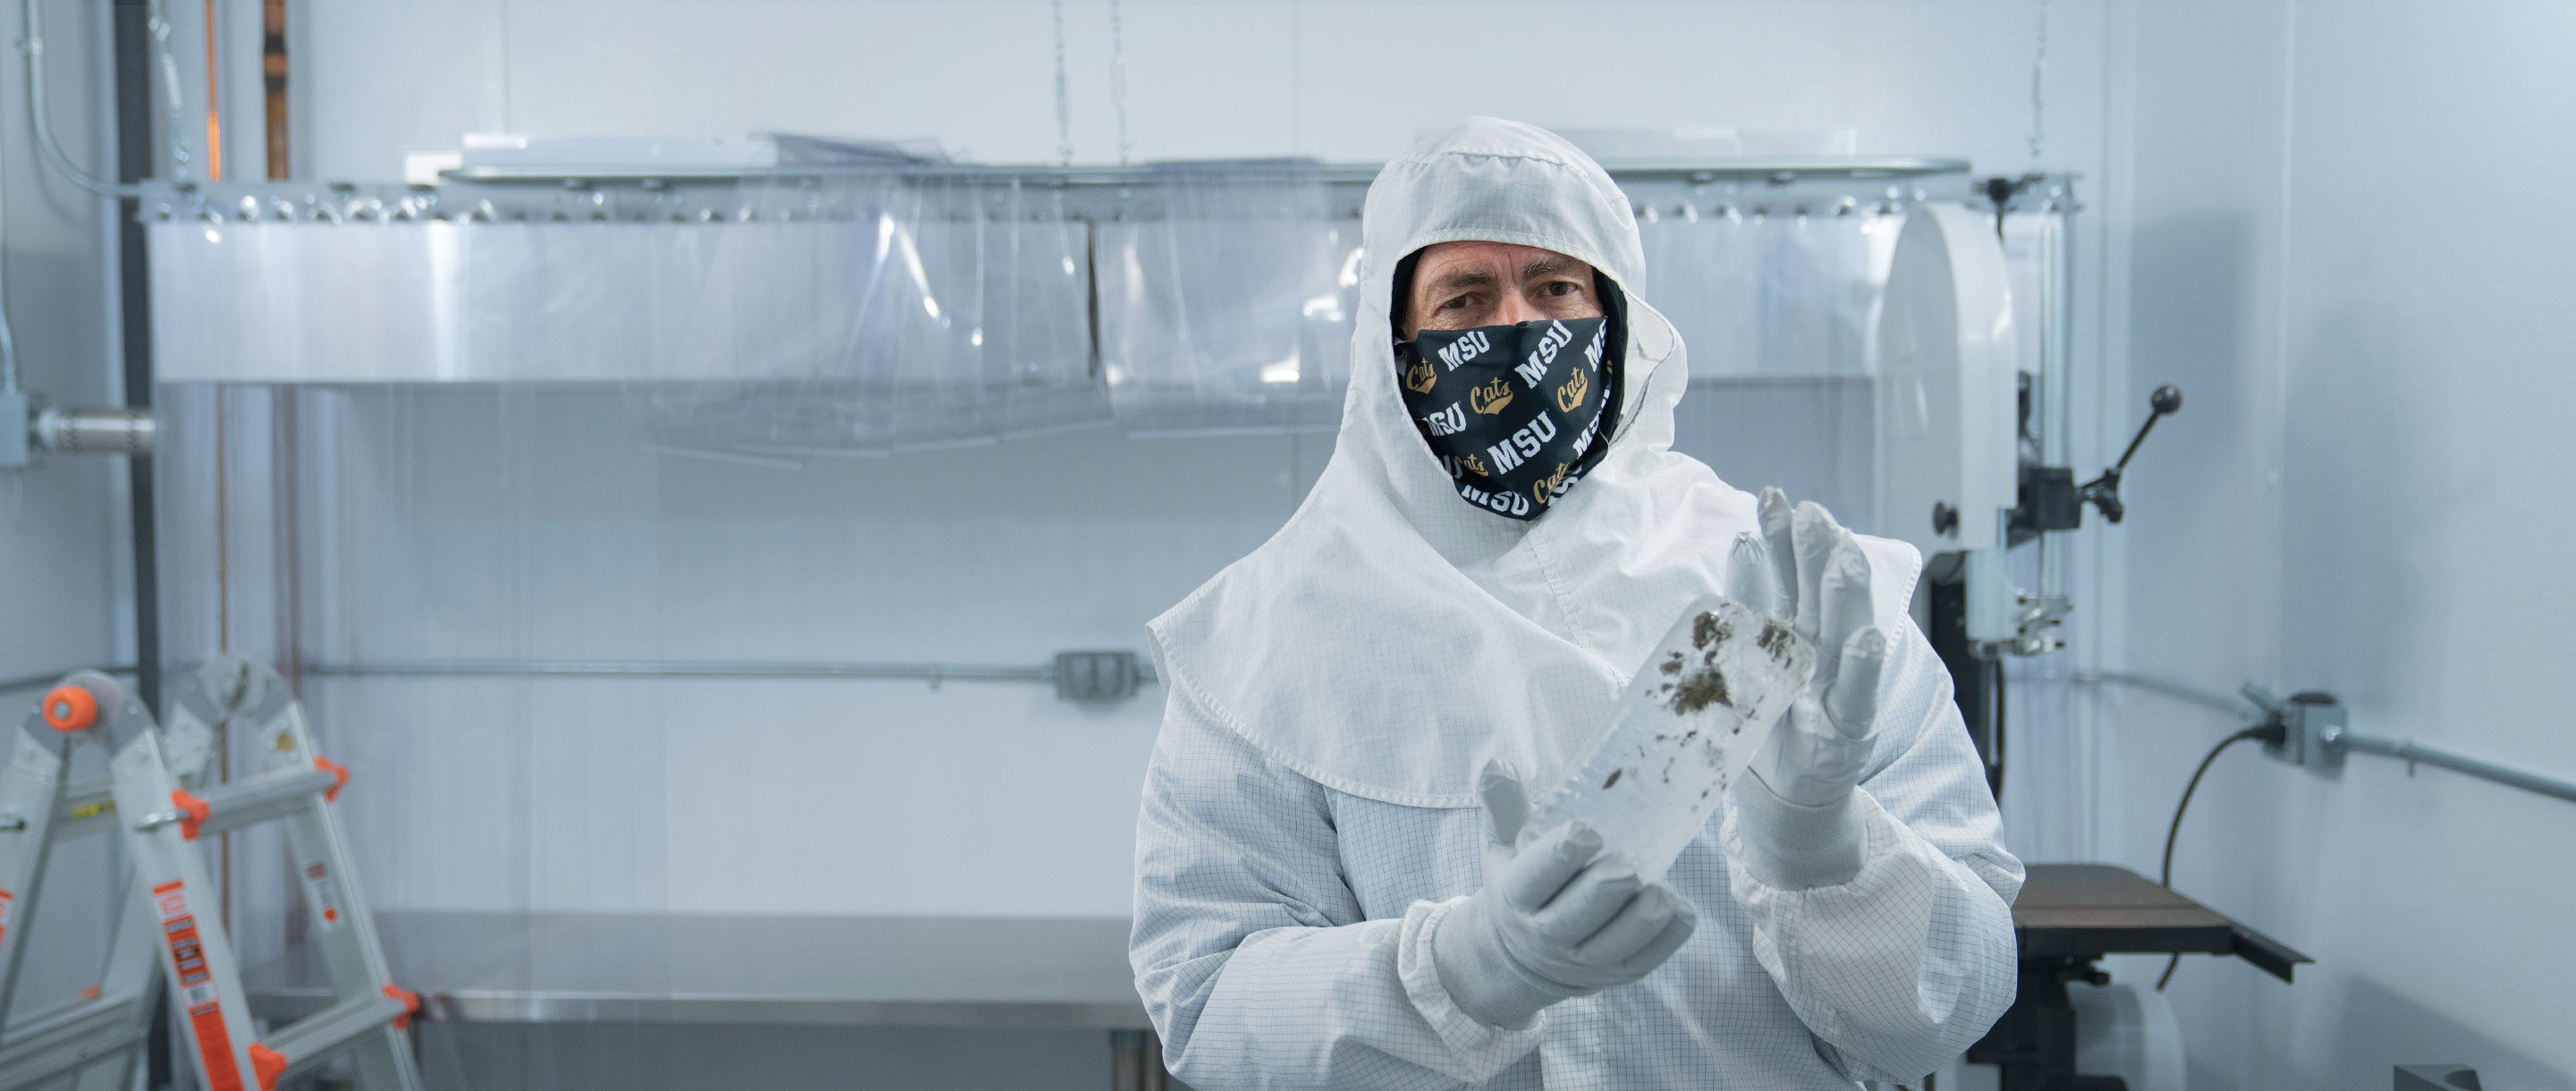 John Priscu holds an ice core sample in a sterile laboratory.